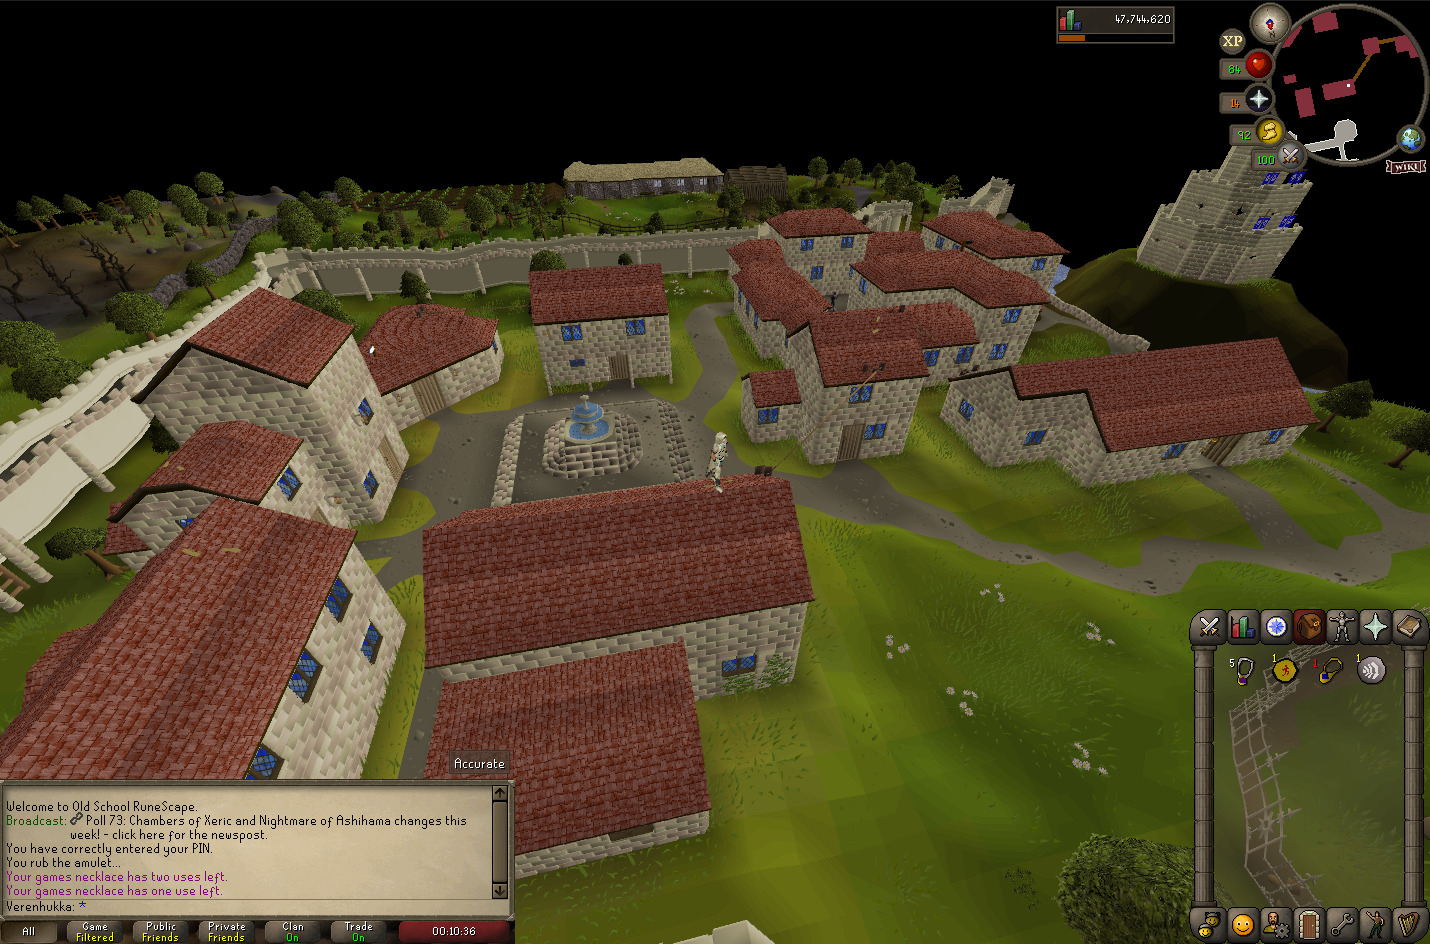 A view from a rooftop in Falador